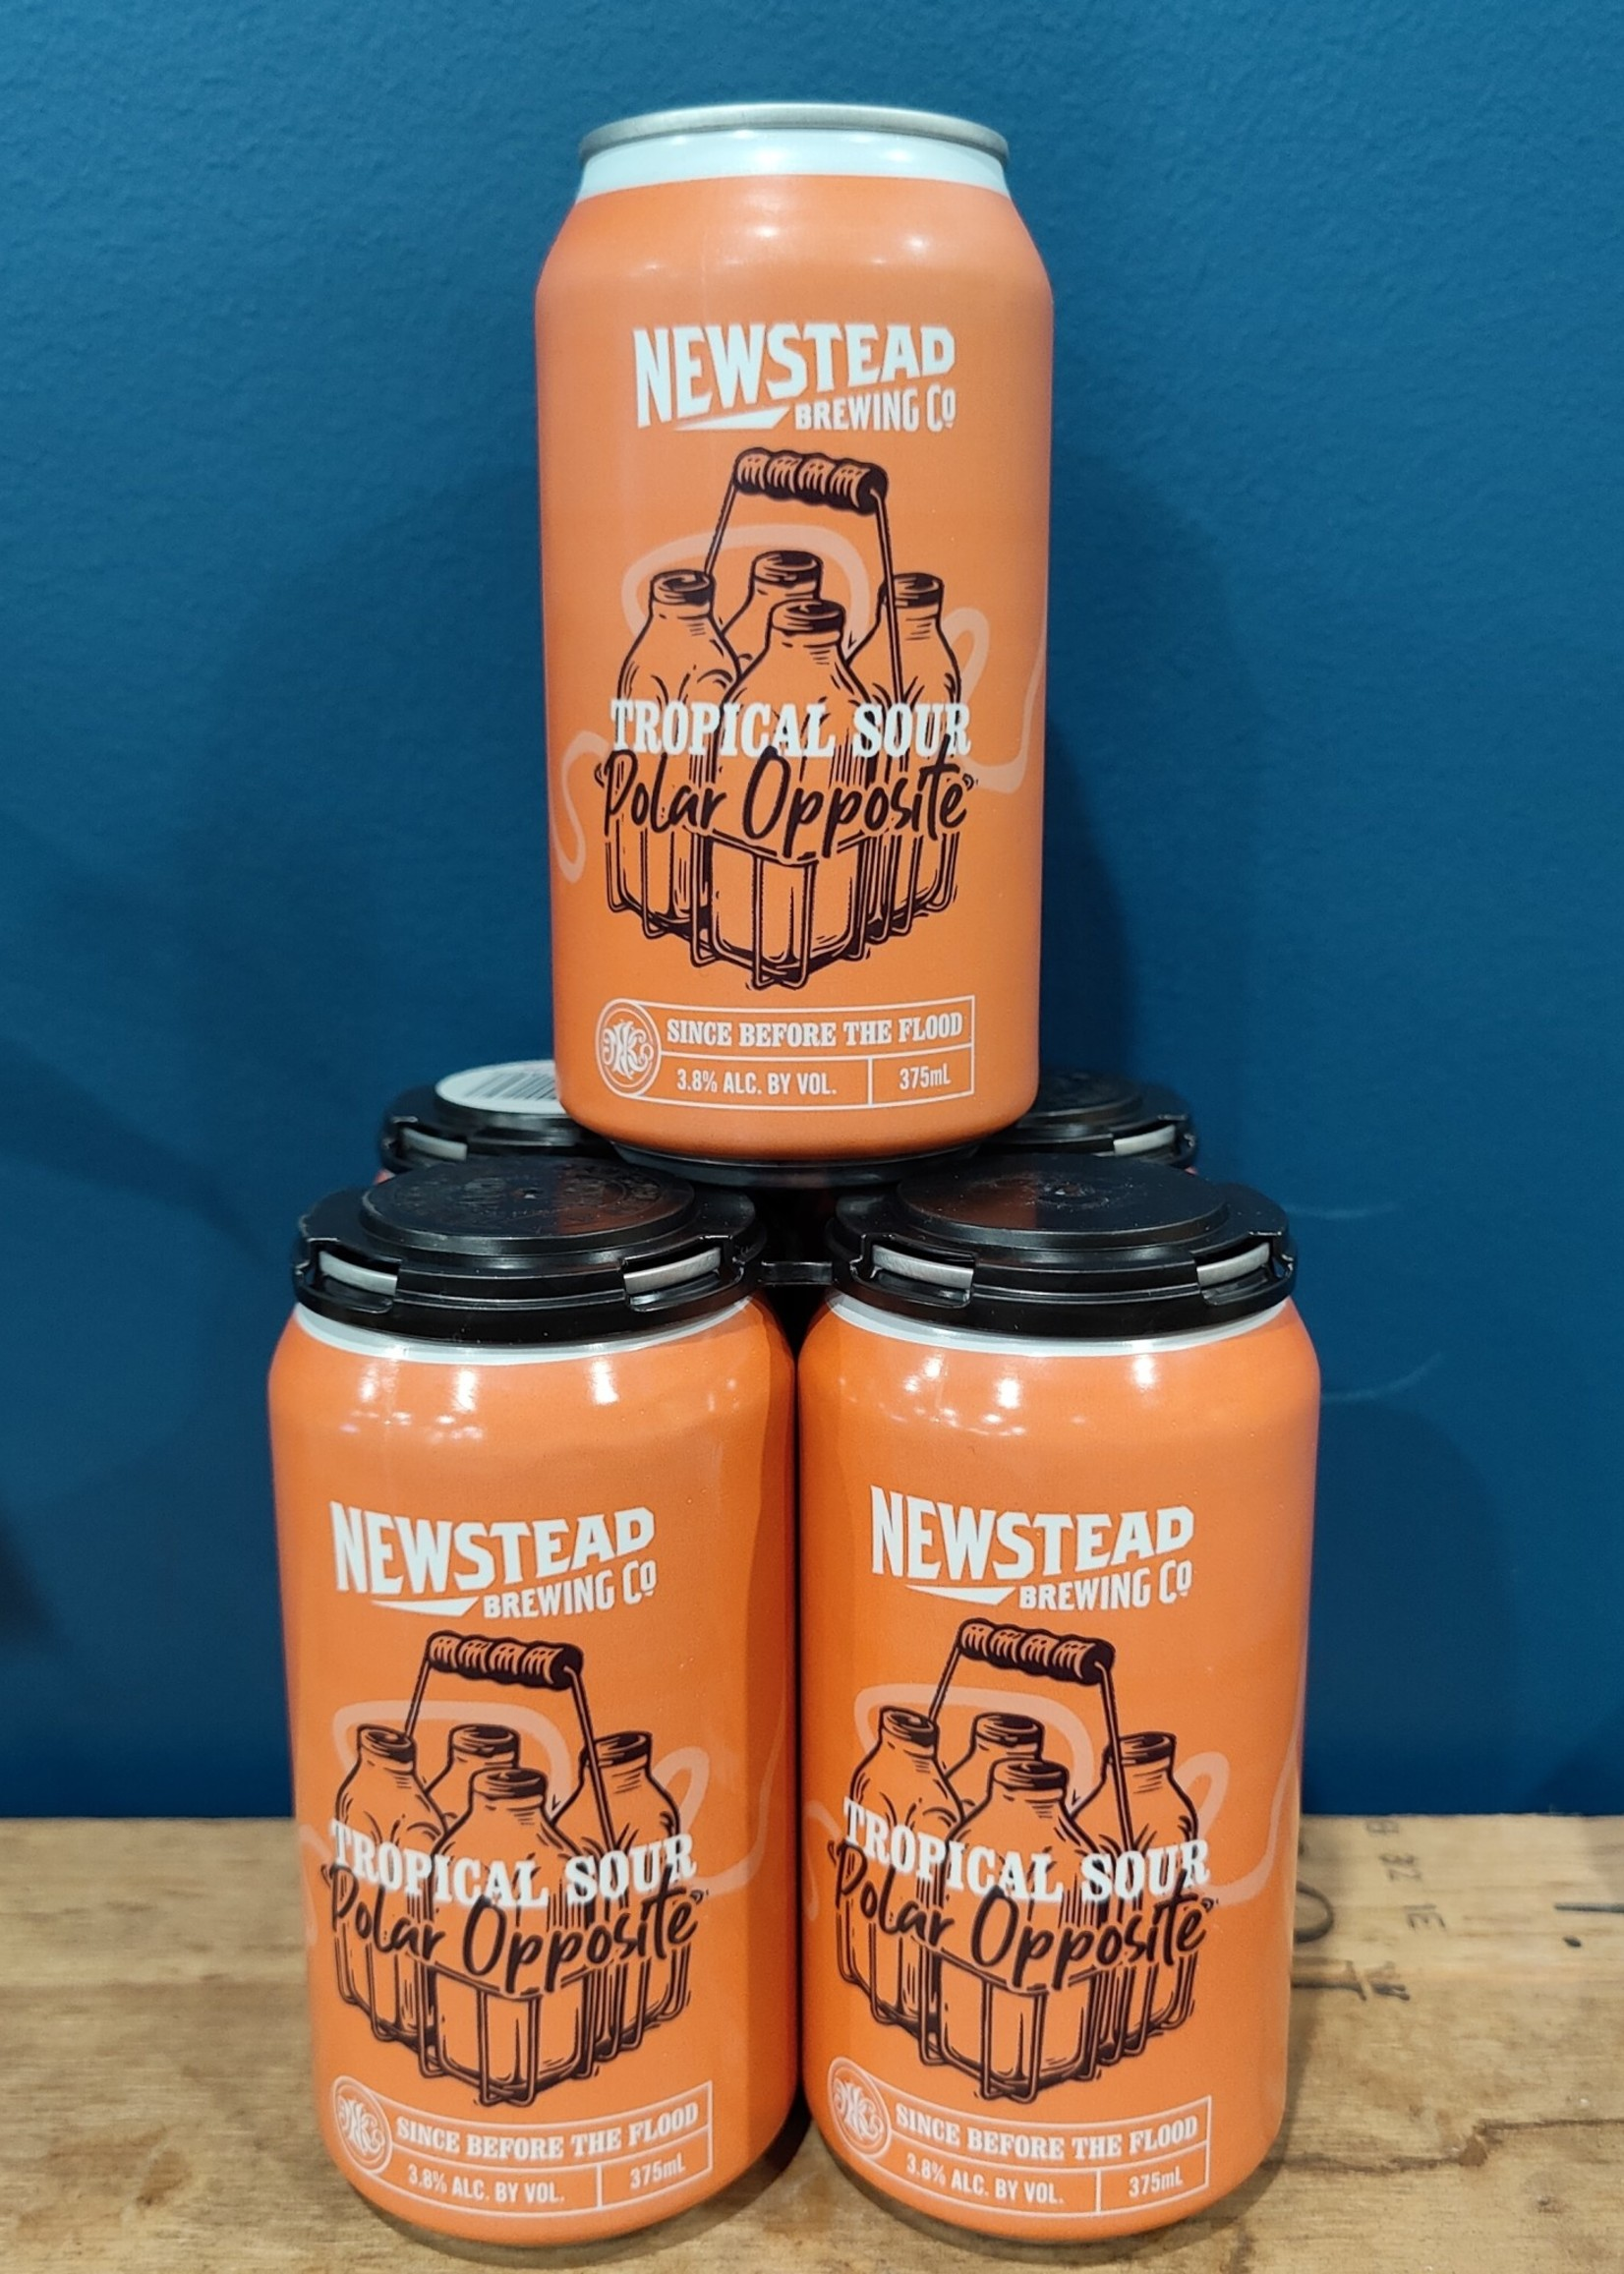 Newstead Brewing Co. Polar Opposite Tropical Sour